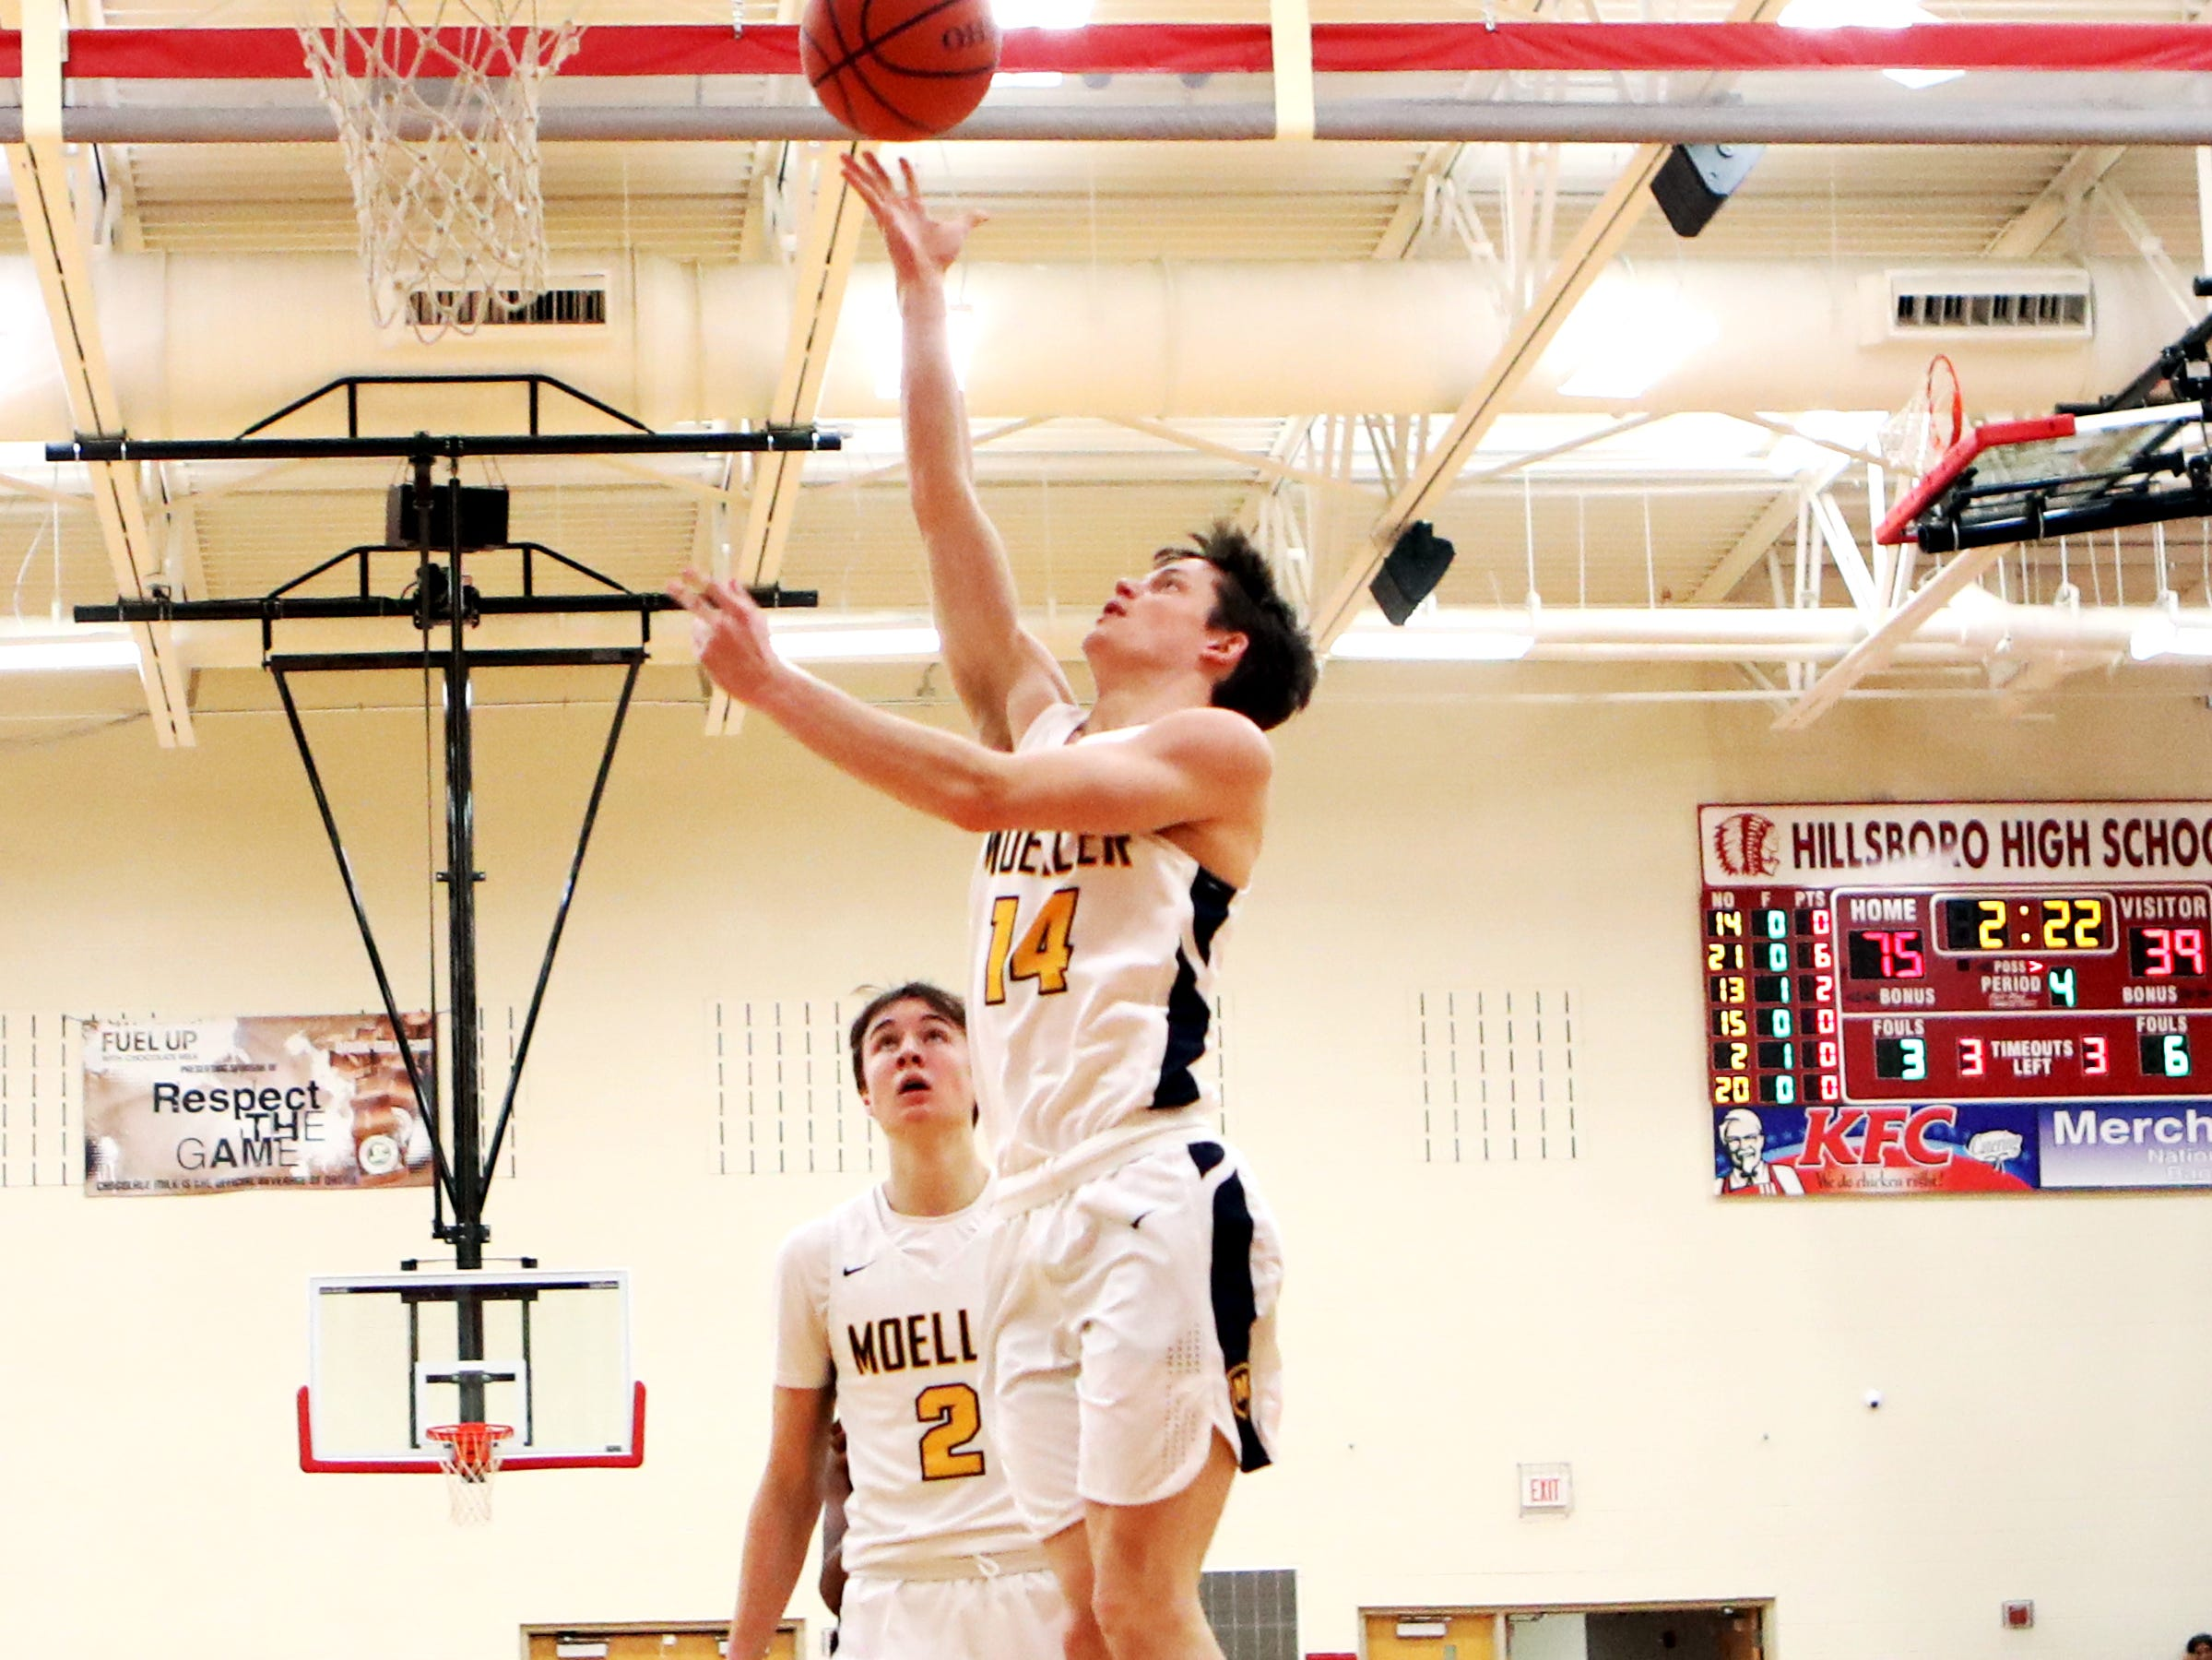 Moeller guard Garde Thompson scores at the Ohio Valley Hoops Classic at Hillsboro High School. Moeller defeated Bryan Station 85-42.